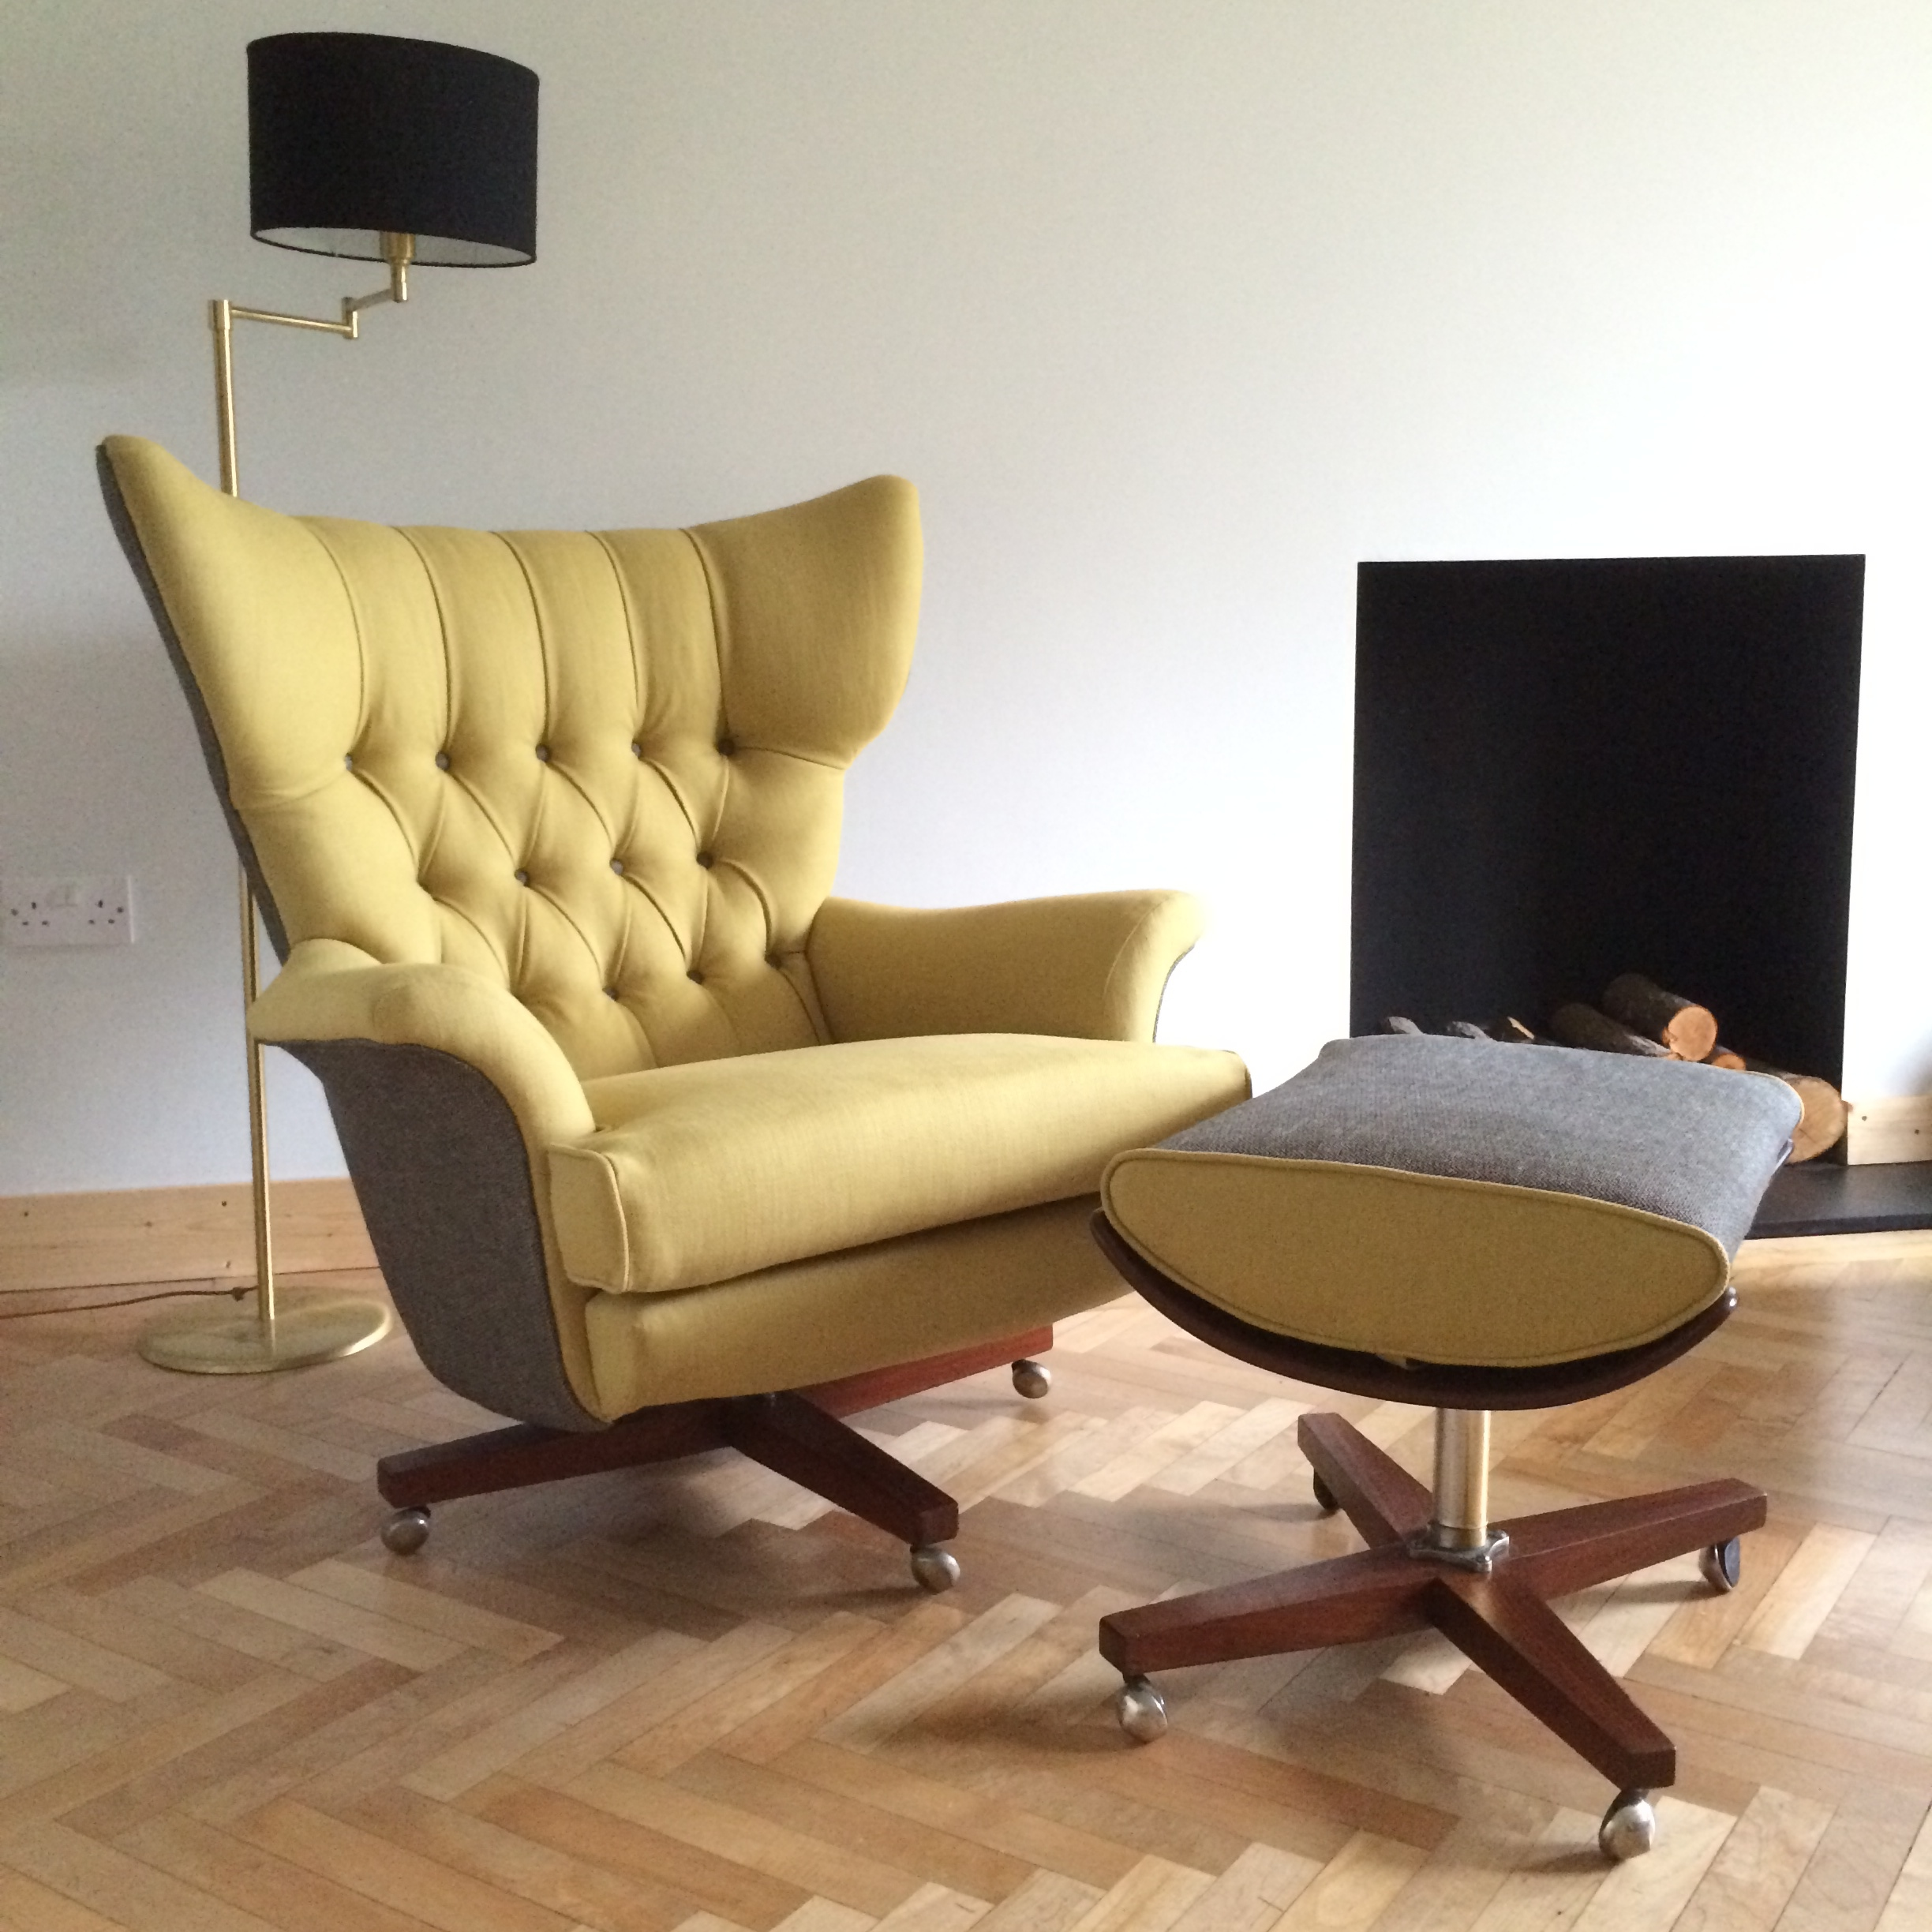 Vintage Swivel Chair G Plan Florrie Bill